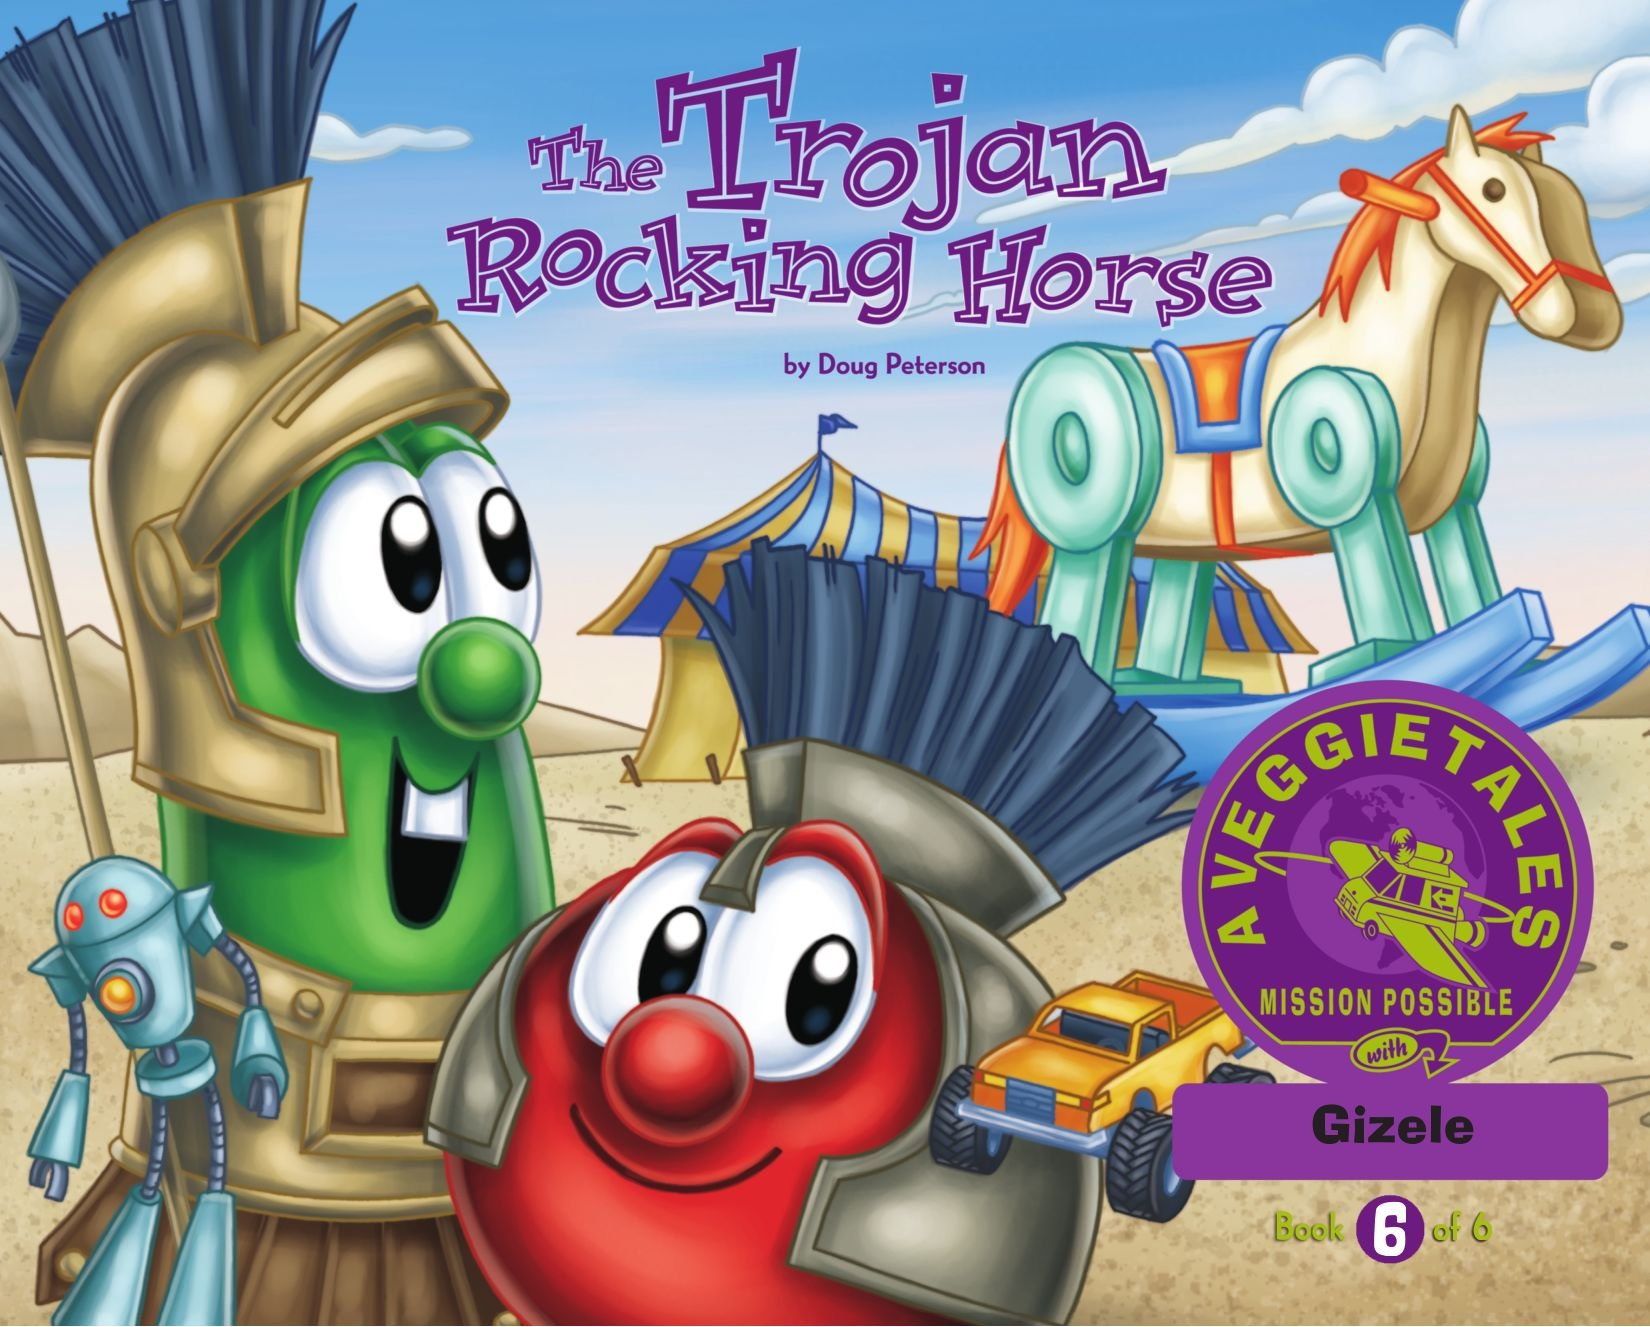 The Trojan Rocking Horse - VeggieTales Mission Possible Adventure Series #6: Personalized for Gizele (Girl) pdf epub